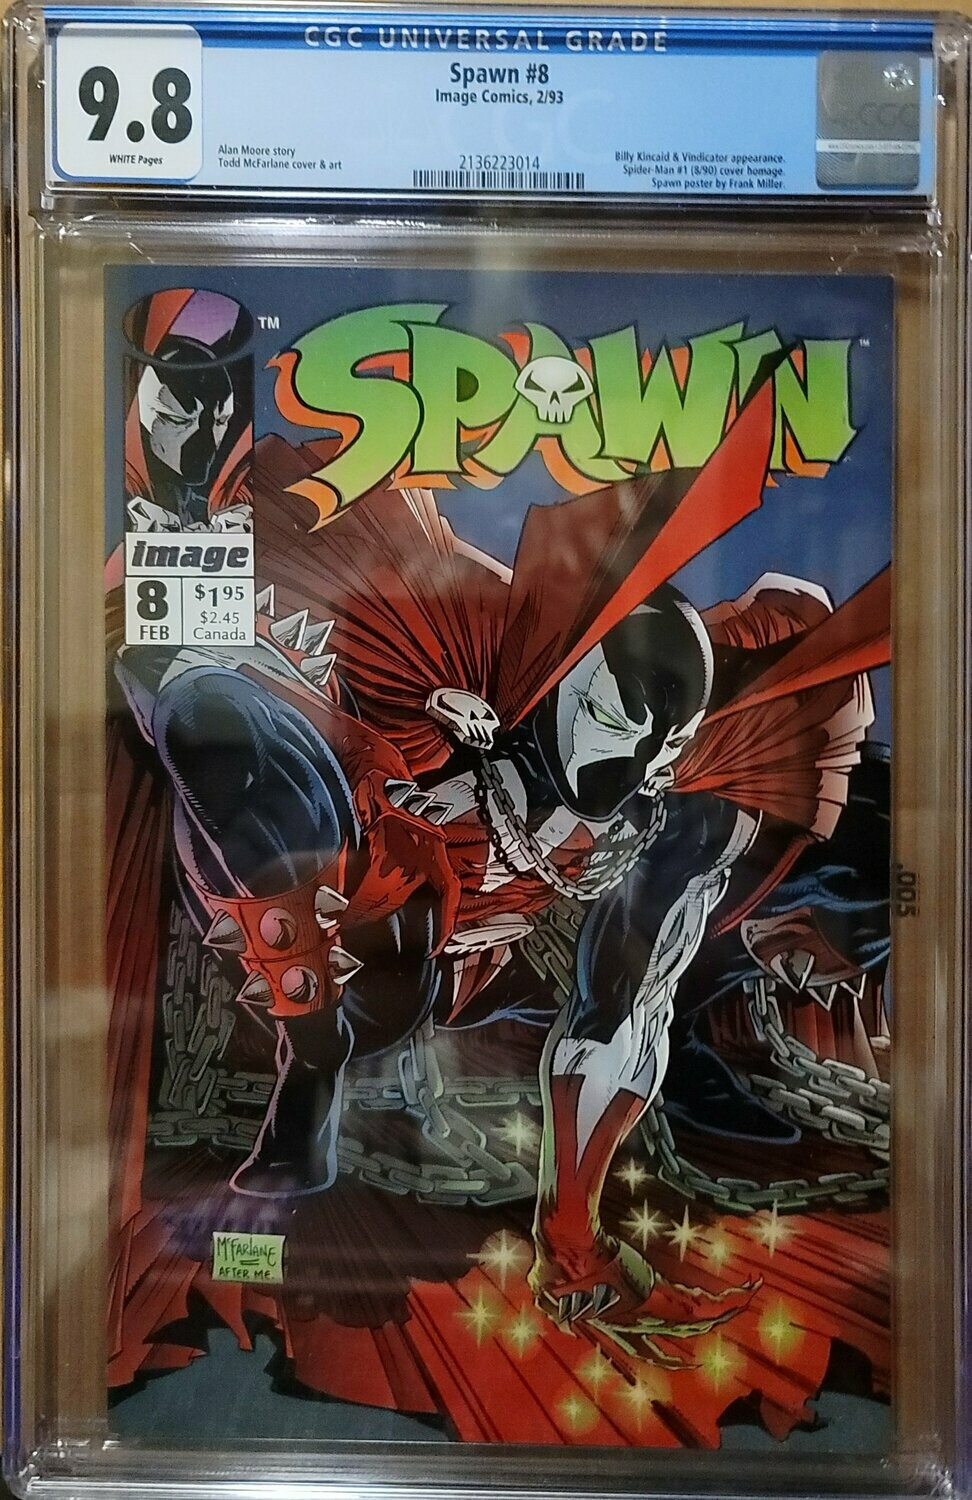 SPAWN #8  CGC 9.8  WHITE PAGES McFARLANE ART SPIDERMAN HOMAGE